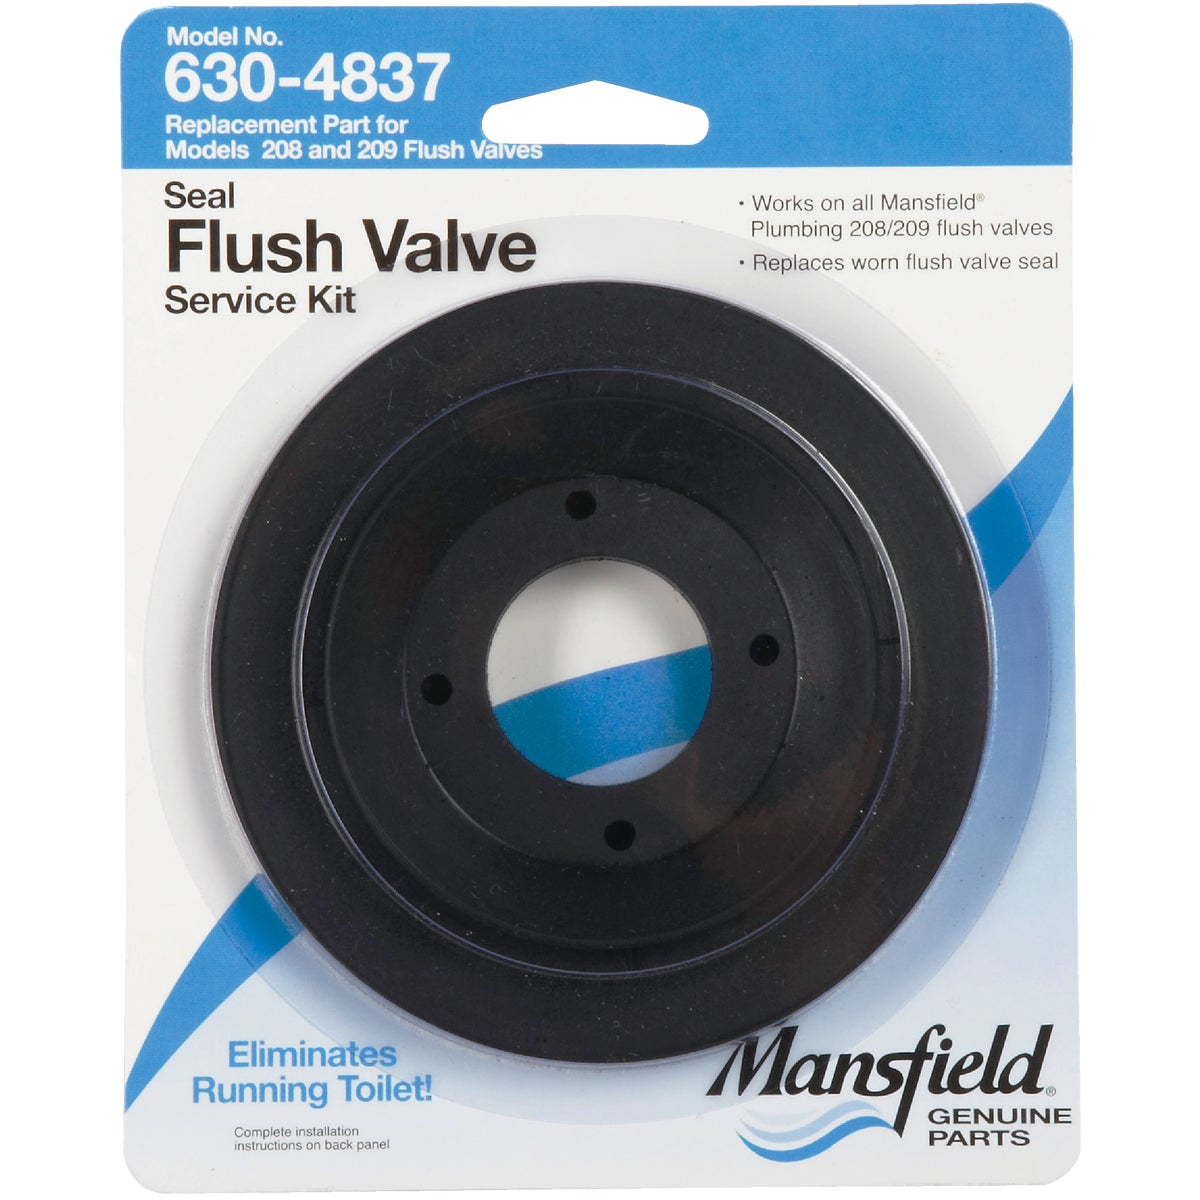 REPLACE FLUSH VALVE SEAL